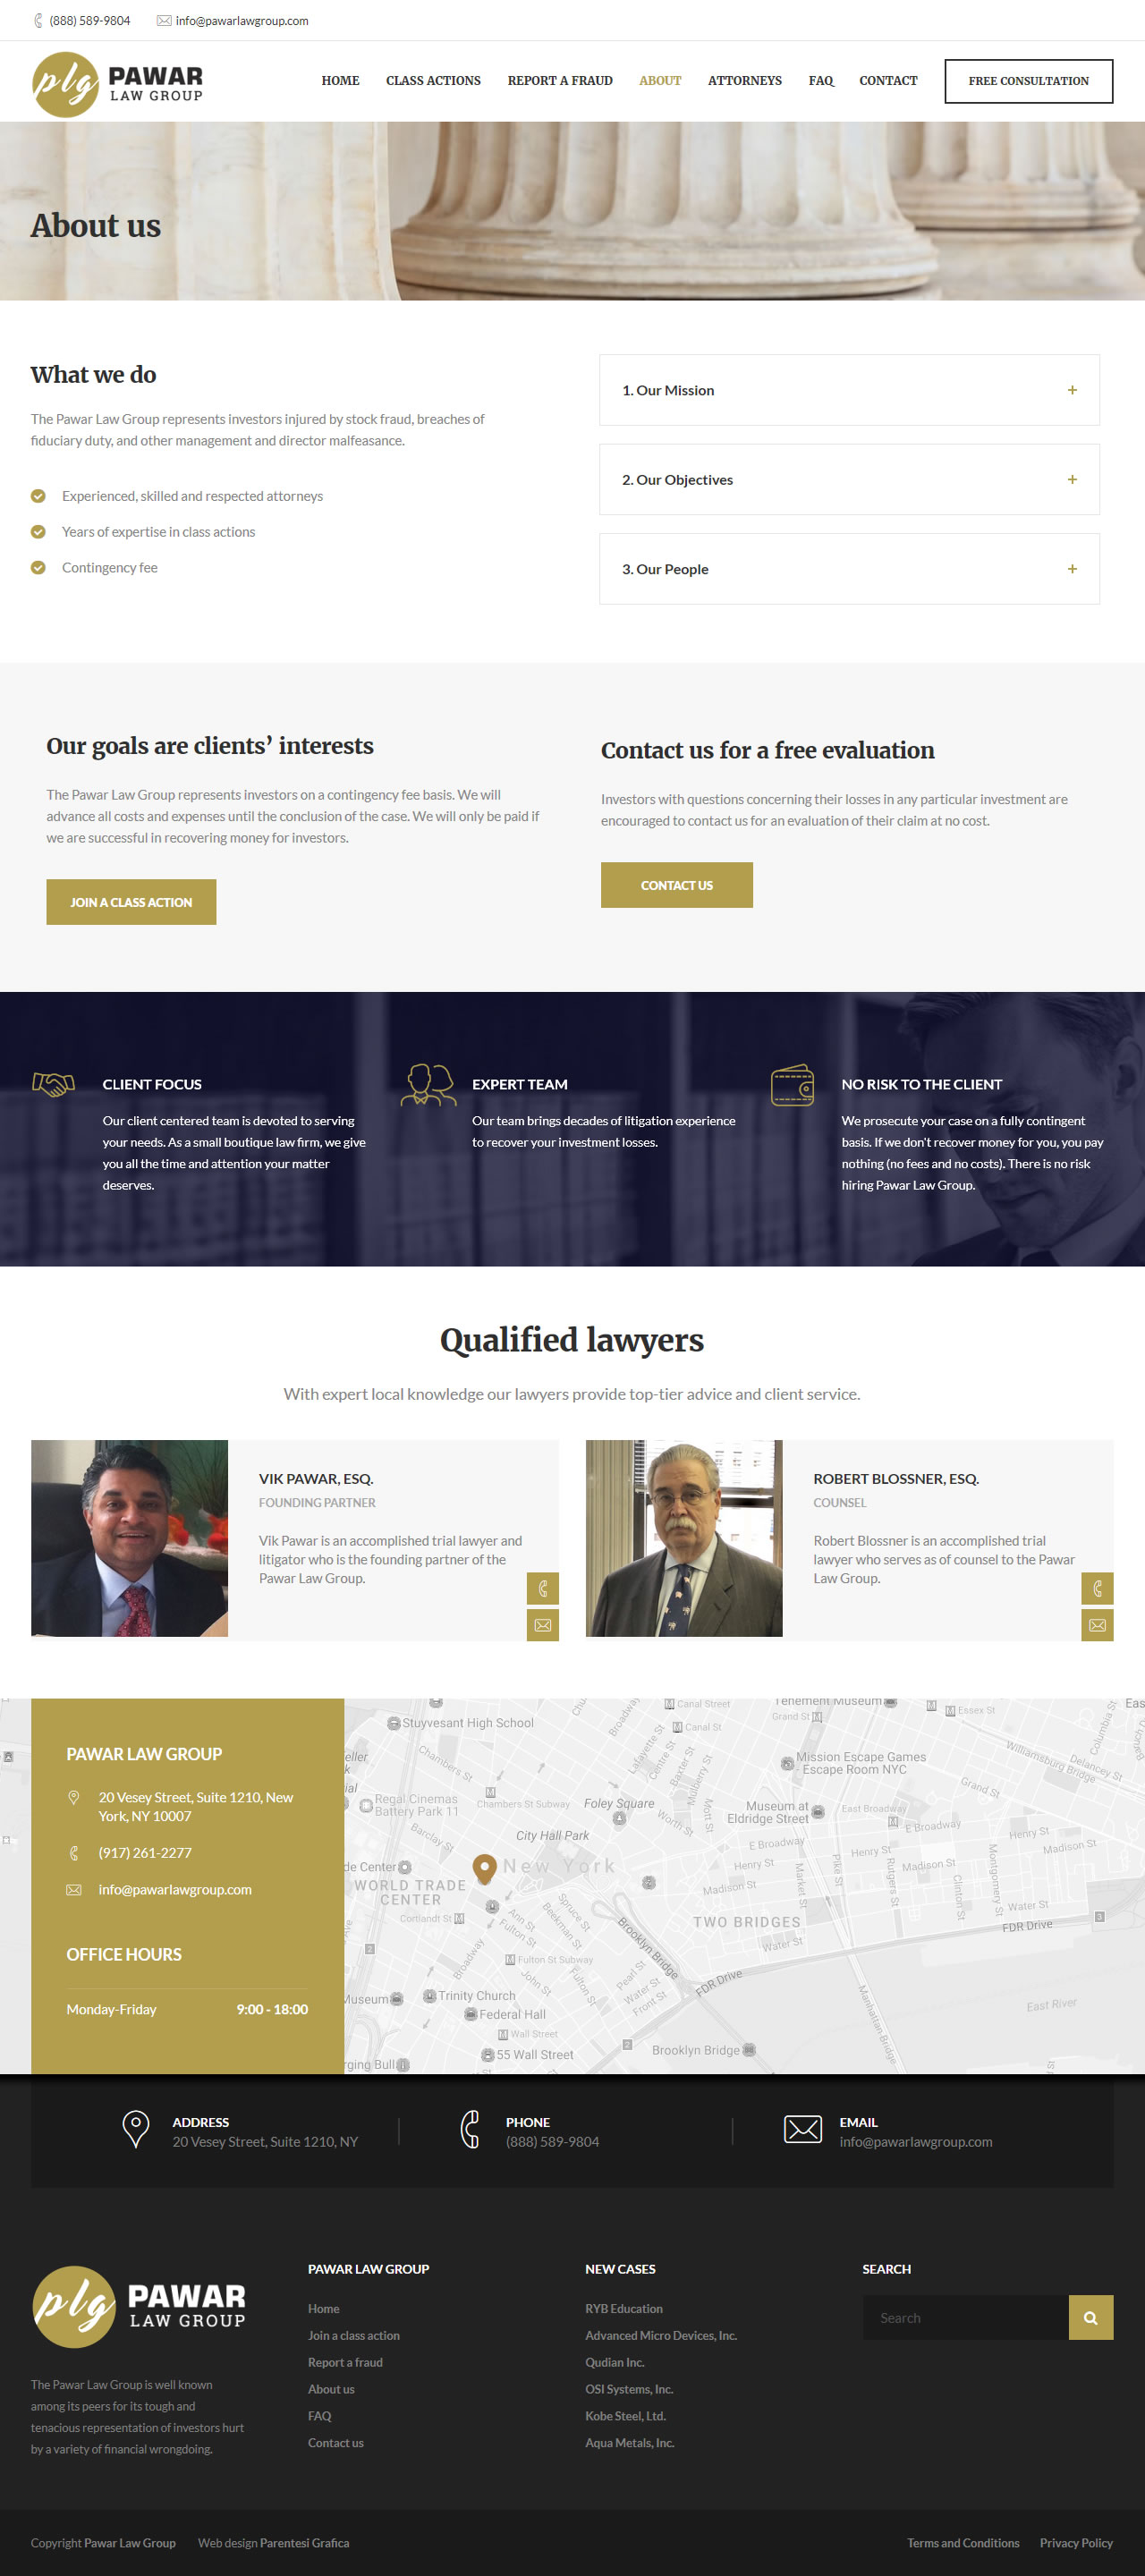 Pawar Law Group - about us page